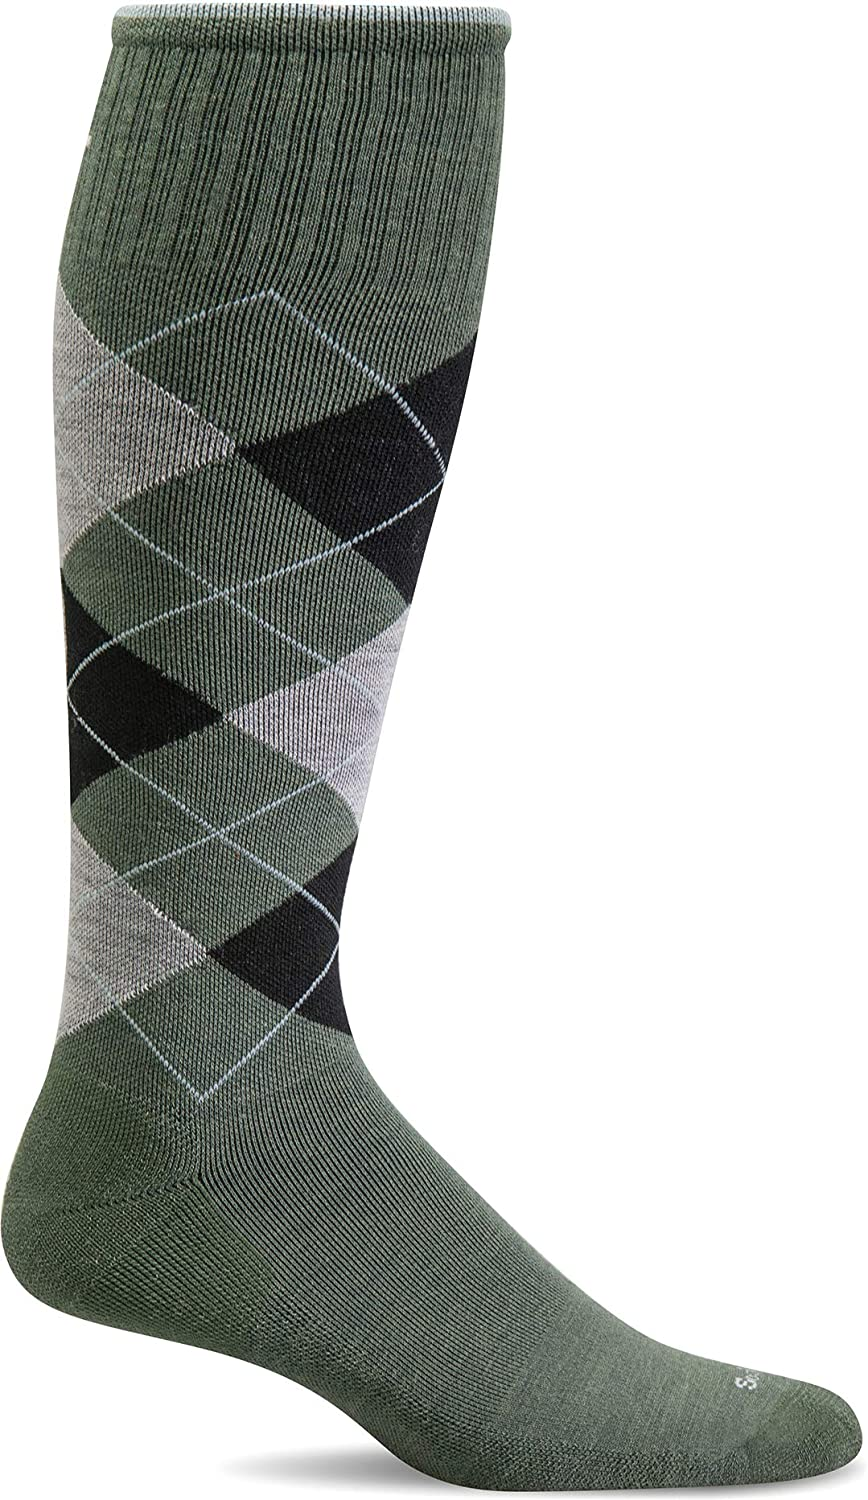 Sockwell Men's Argyle Circulator Moderate Graduated Compression Sock in Eucalyptus from the side